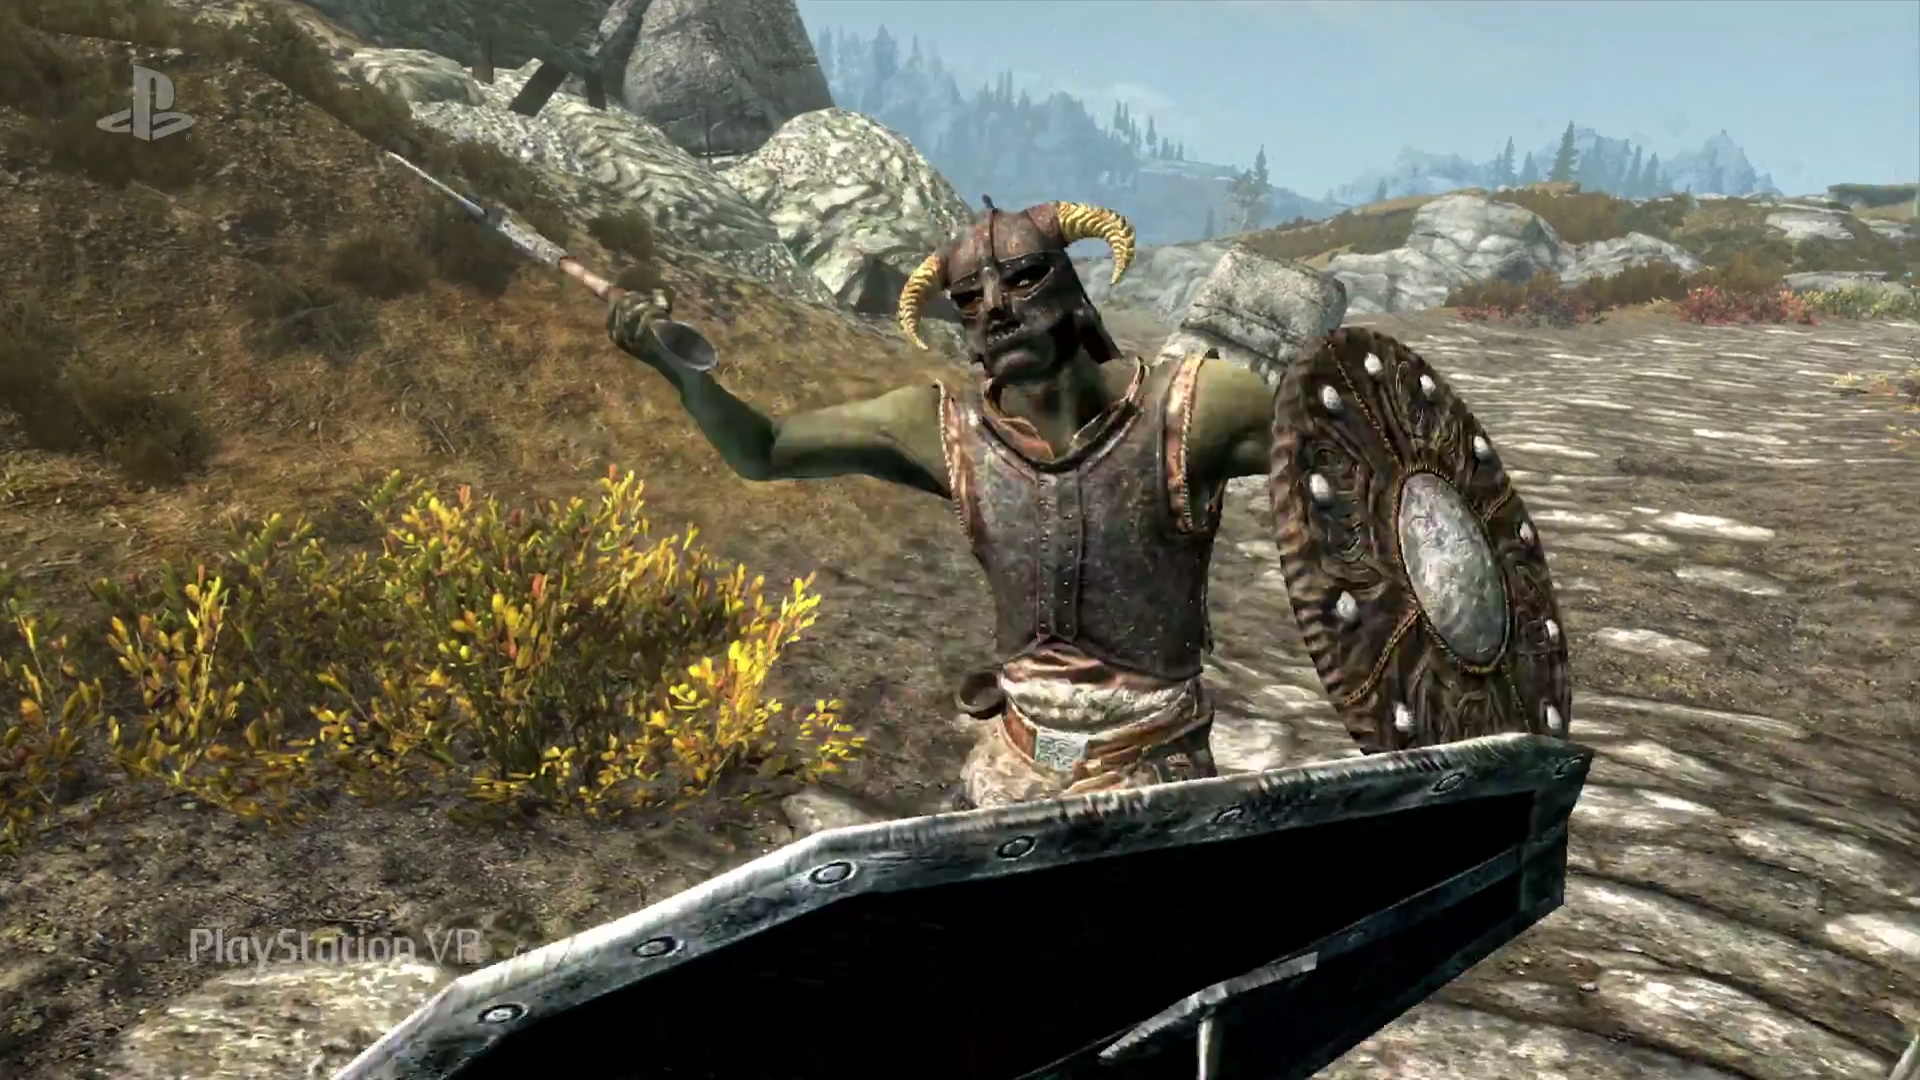 Skyrim VR for PS4 gets big update to improve graphics and control